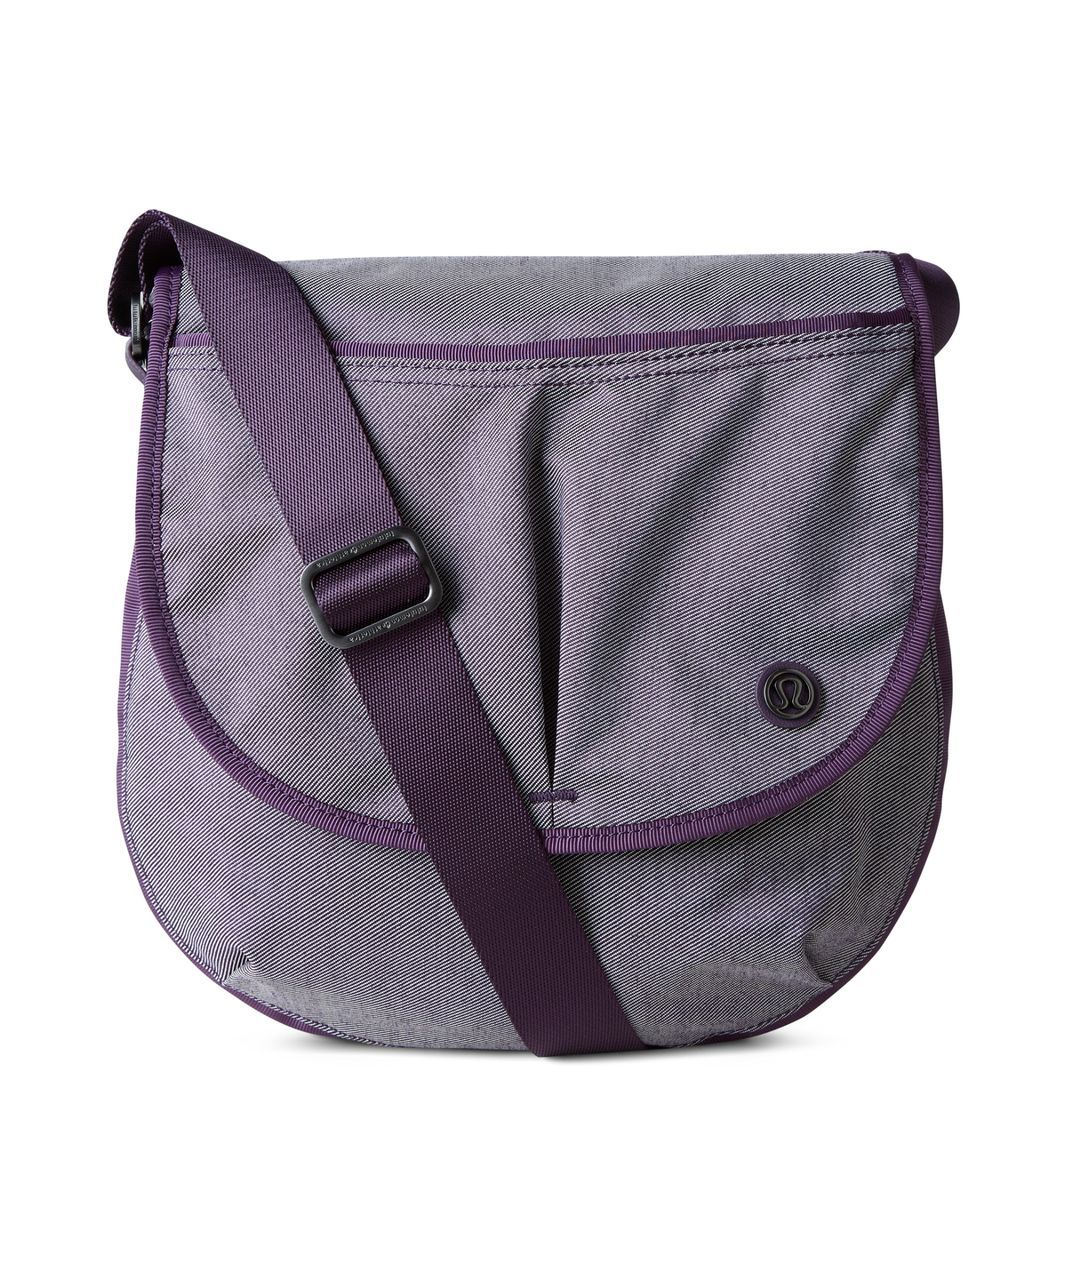 7ffc1af536e Lululemon Essentials Bag: Deep Zinfandel | LULULEMON BAGS Wishlist ...